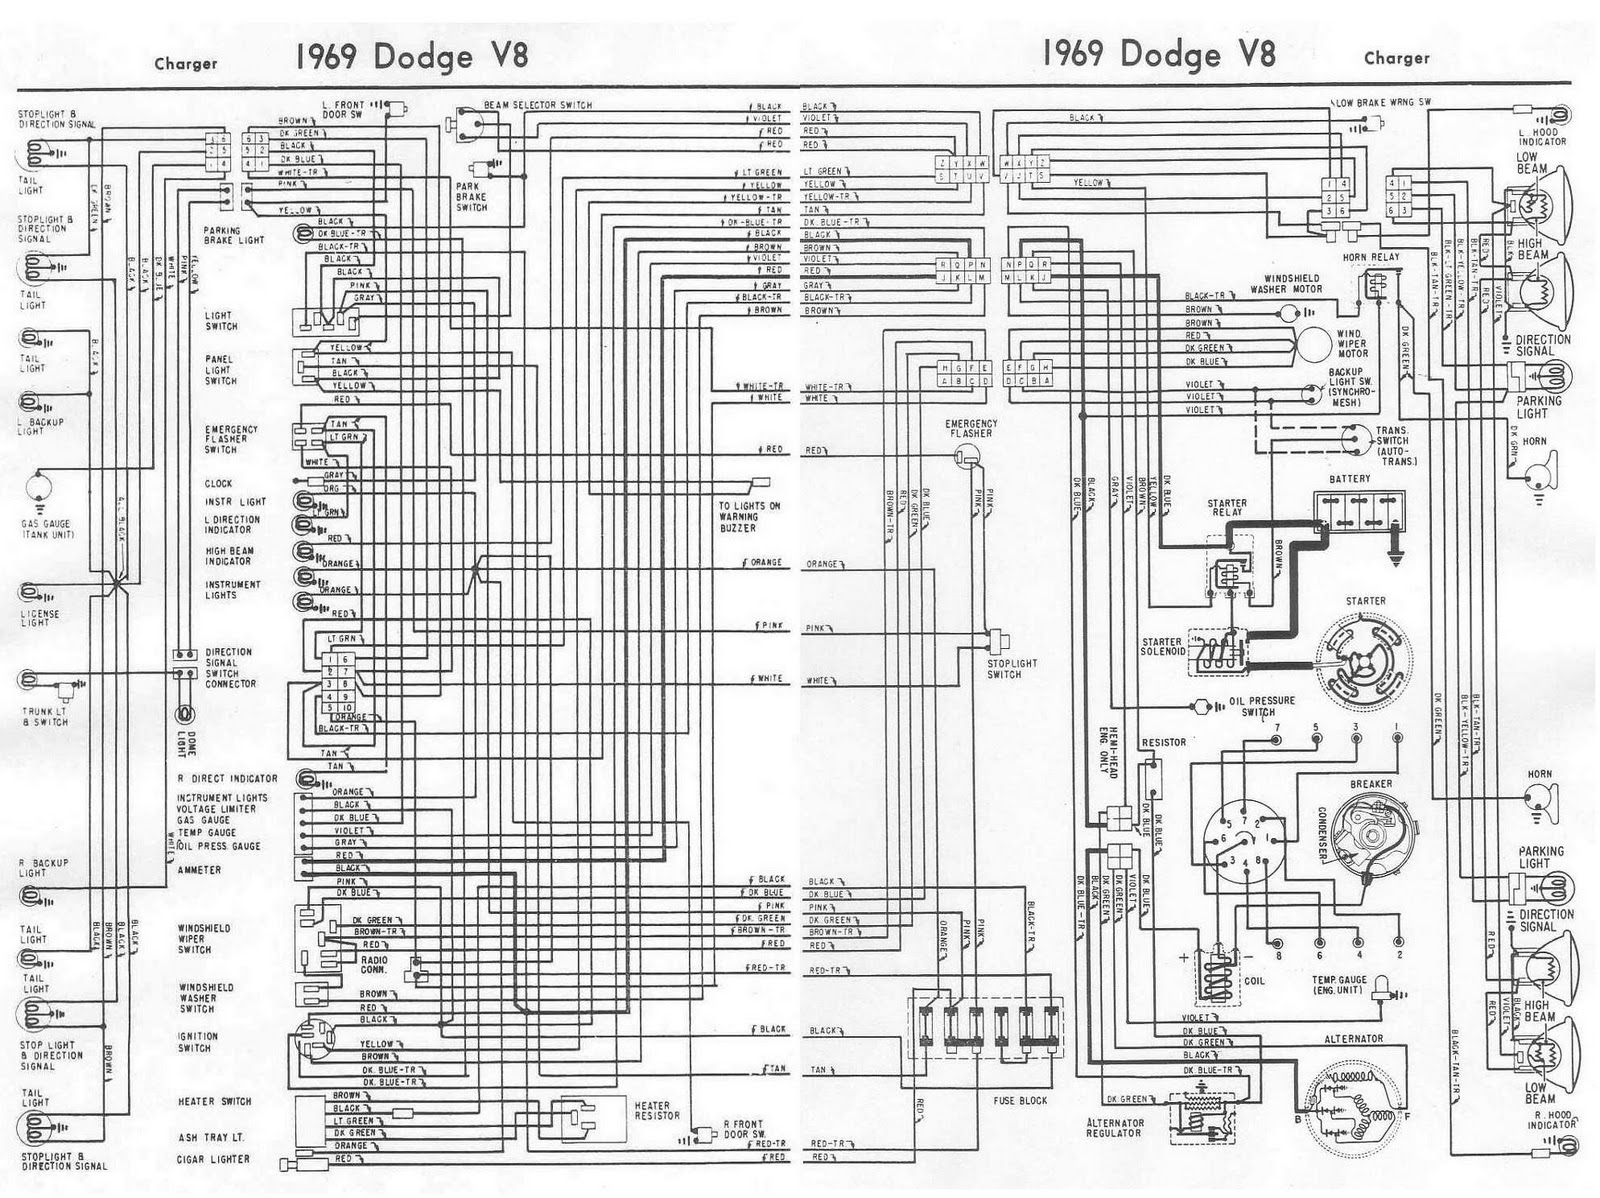 70 dodge charger alternator wiring 2010 dodge charger radio wiring diagram